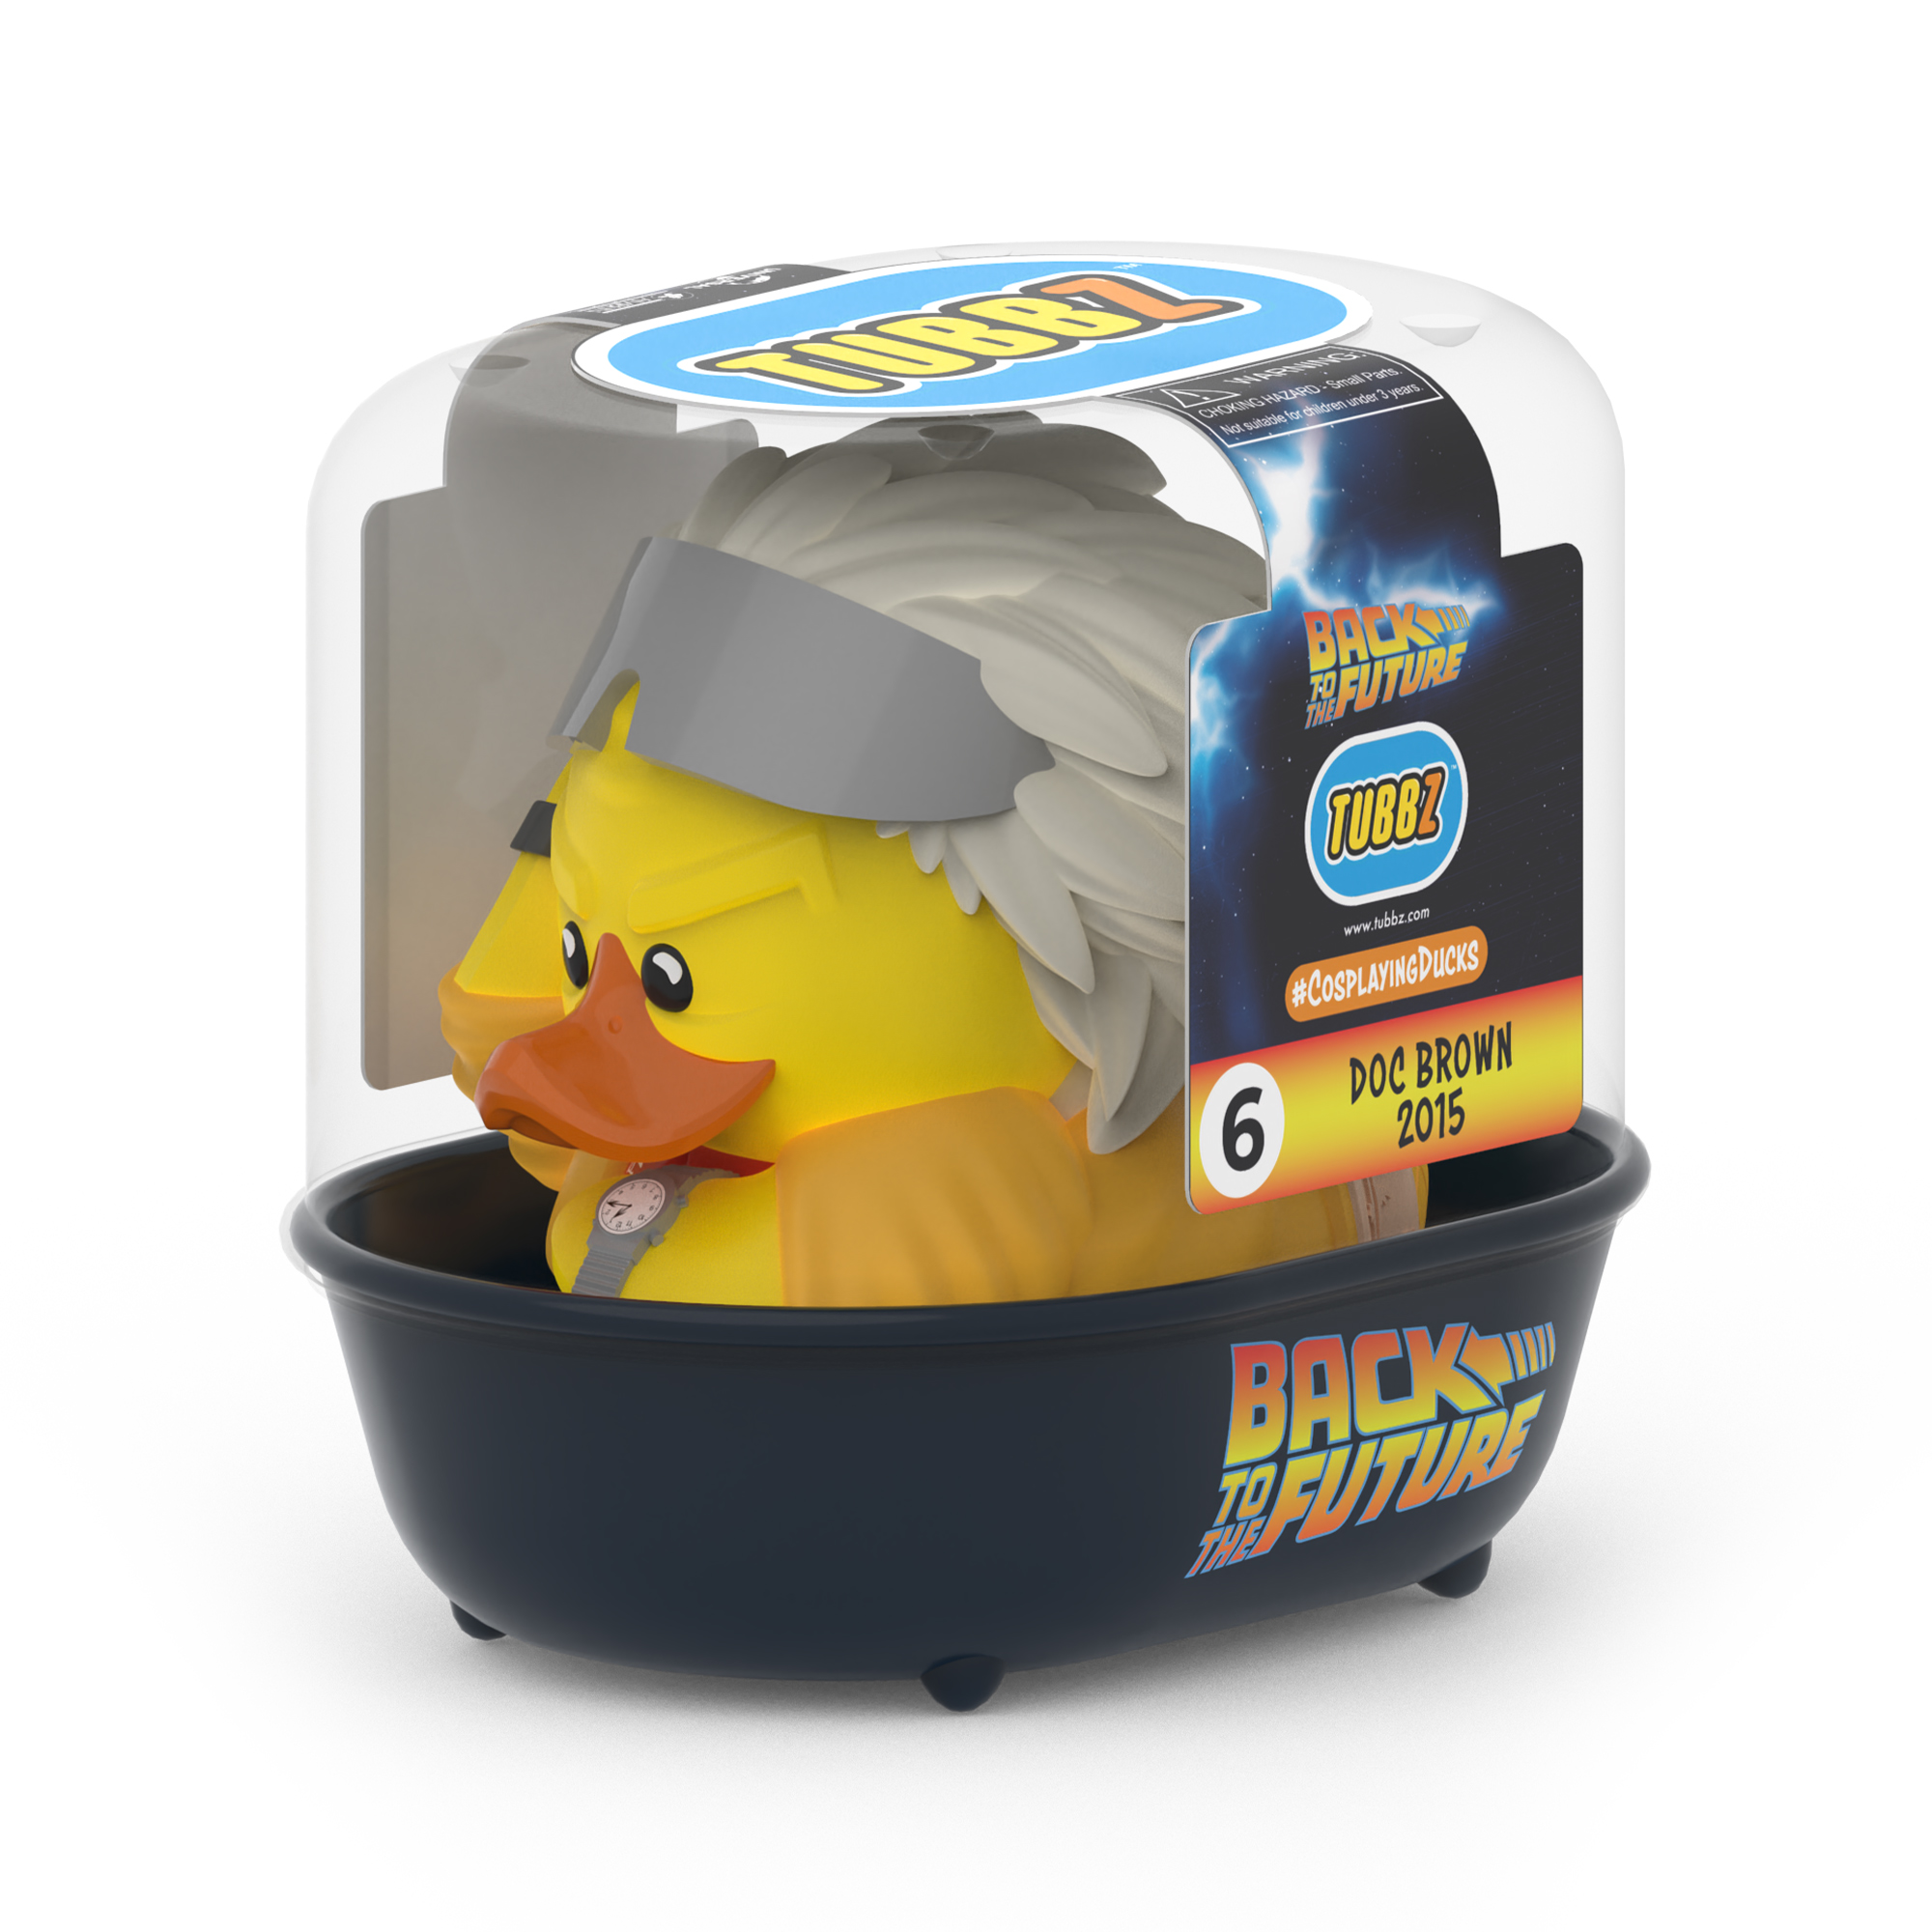 Back To The Future Doc Brown 2015 TUBBZ Cosplaying Duck Collectible